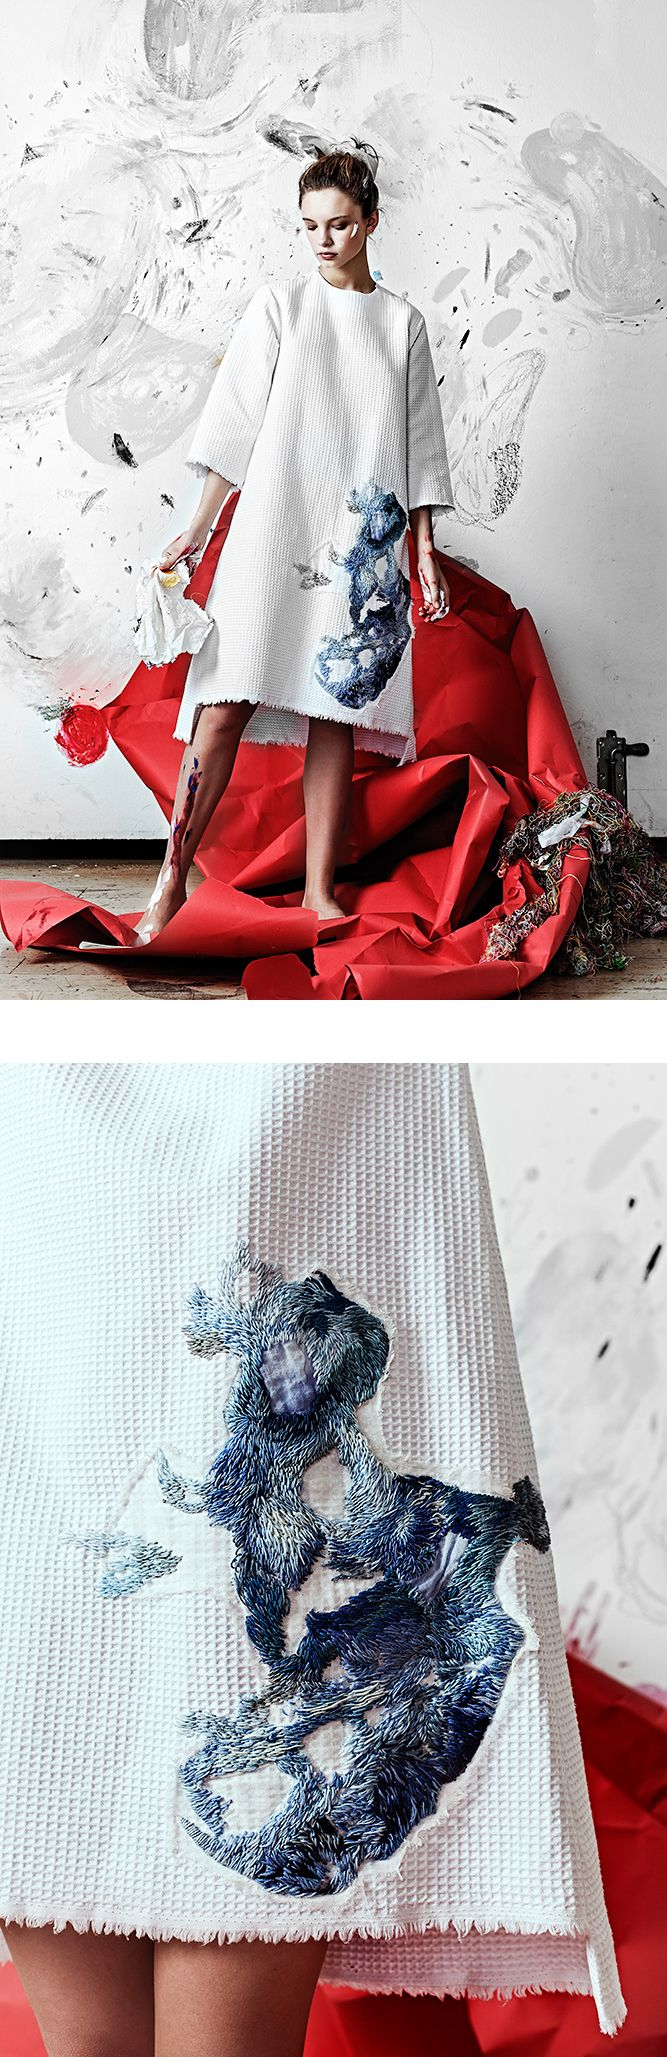 """Olya Glagoleva's brand GO in collaboration with Russian artist Lisa Smirnova for the """"Artist at Home"""" collection"""